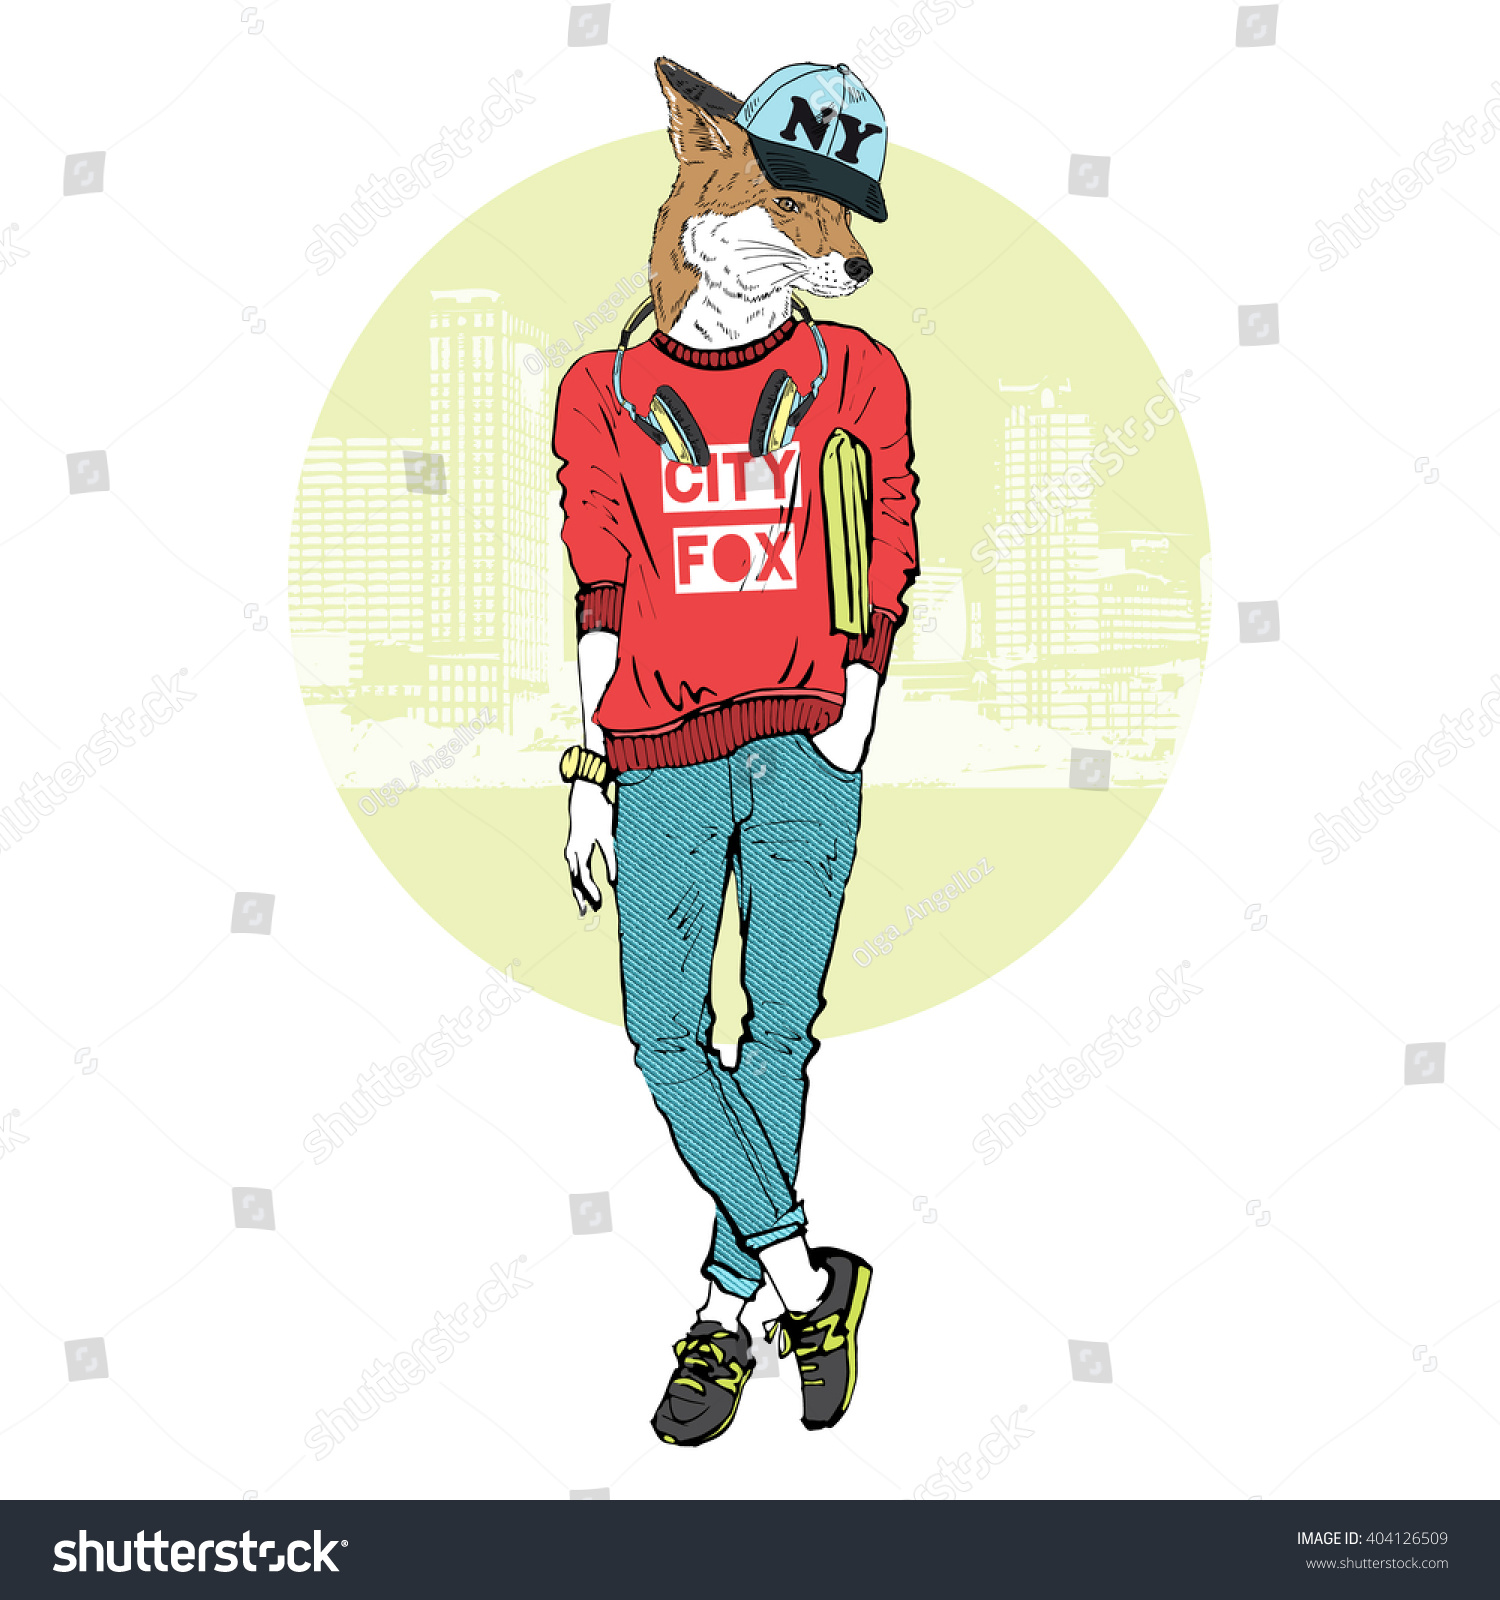 Fox Girl Dressed Sporty Urban Style Stock Vector 404126509 Shutterstock